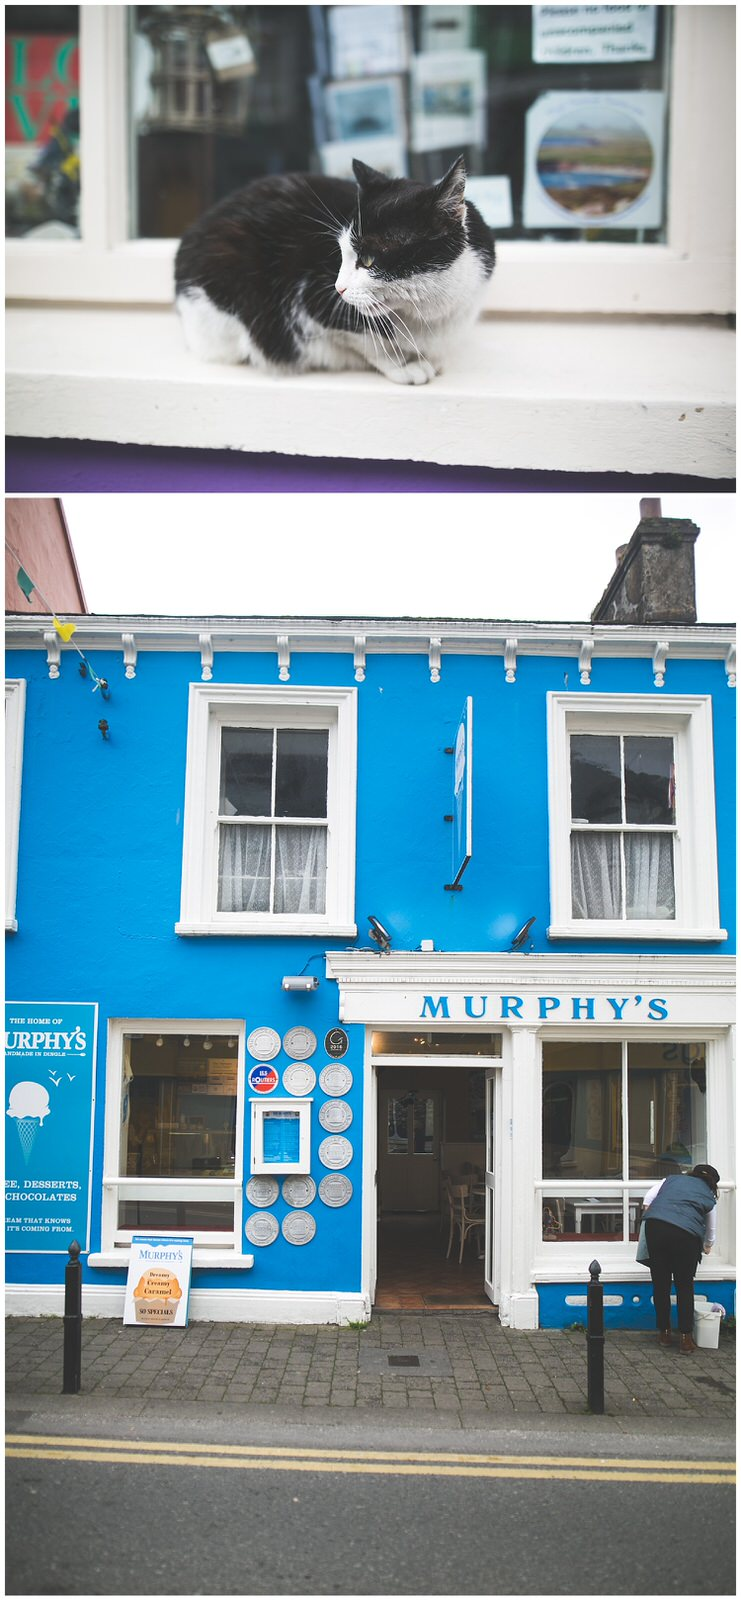 The front of Murphy's Ice-cream shop in Dingle town, Keryy